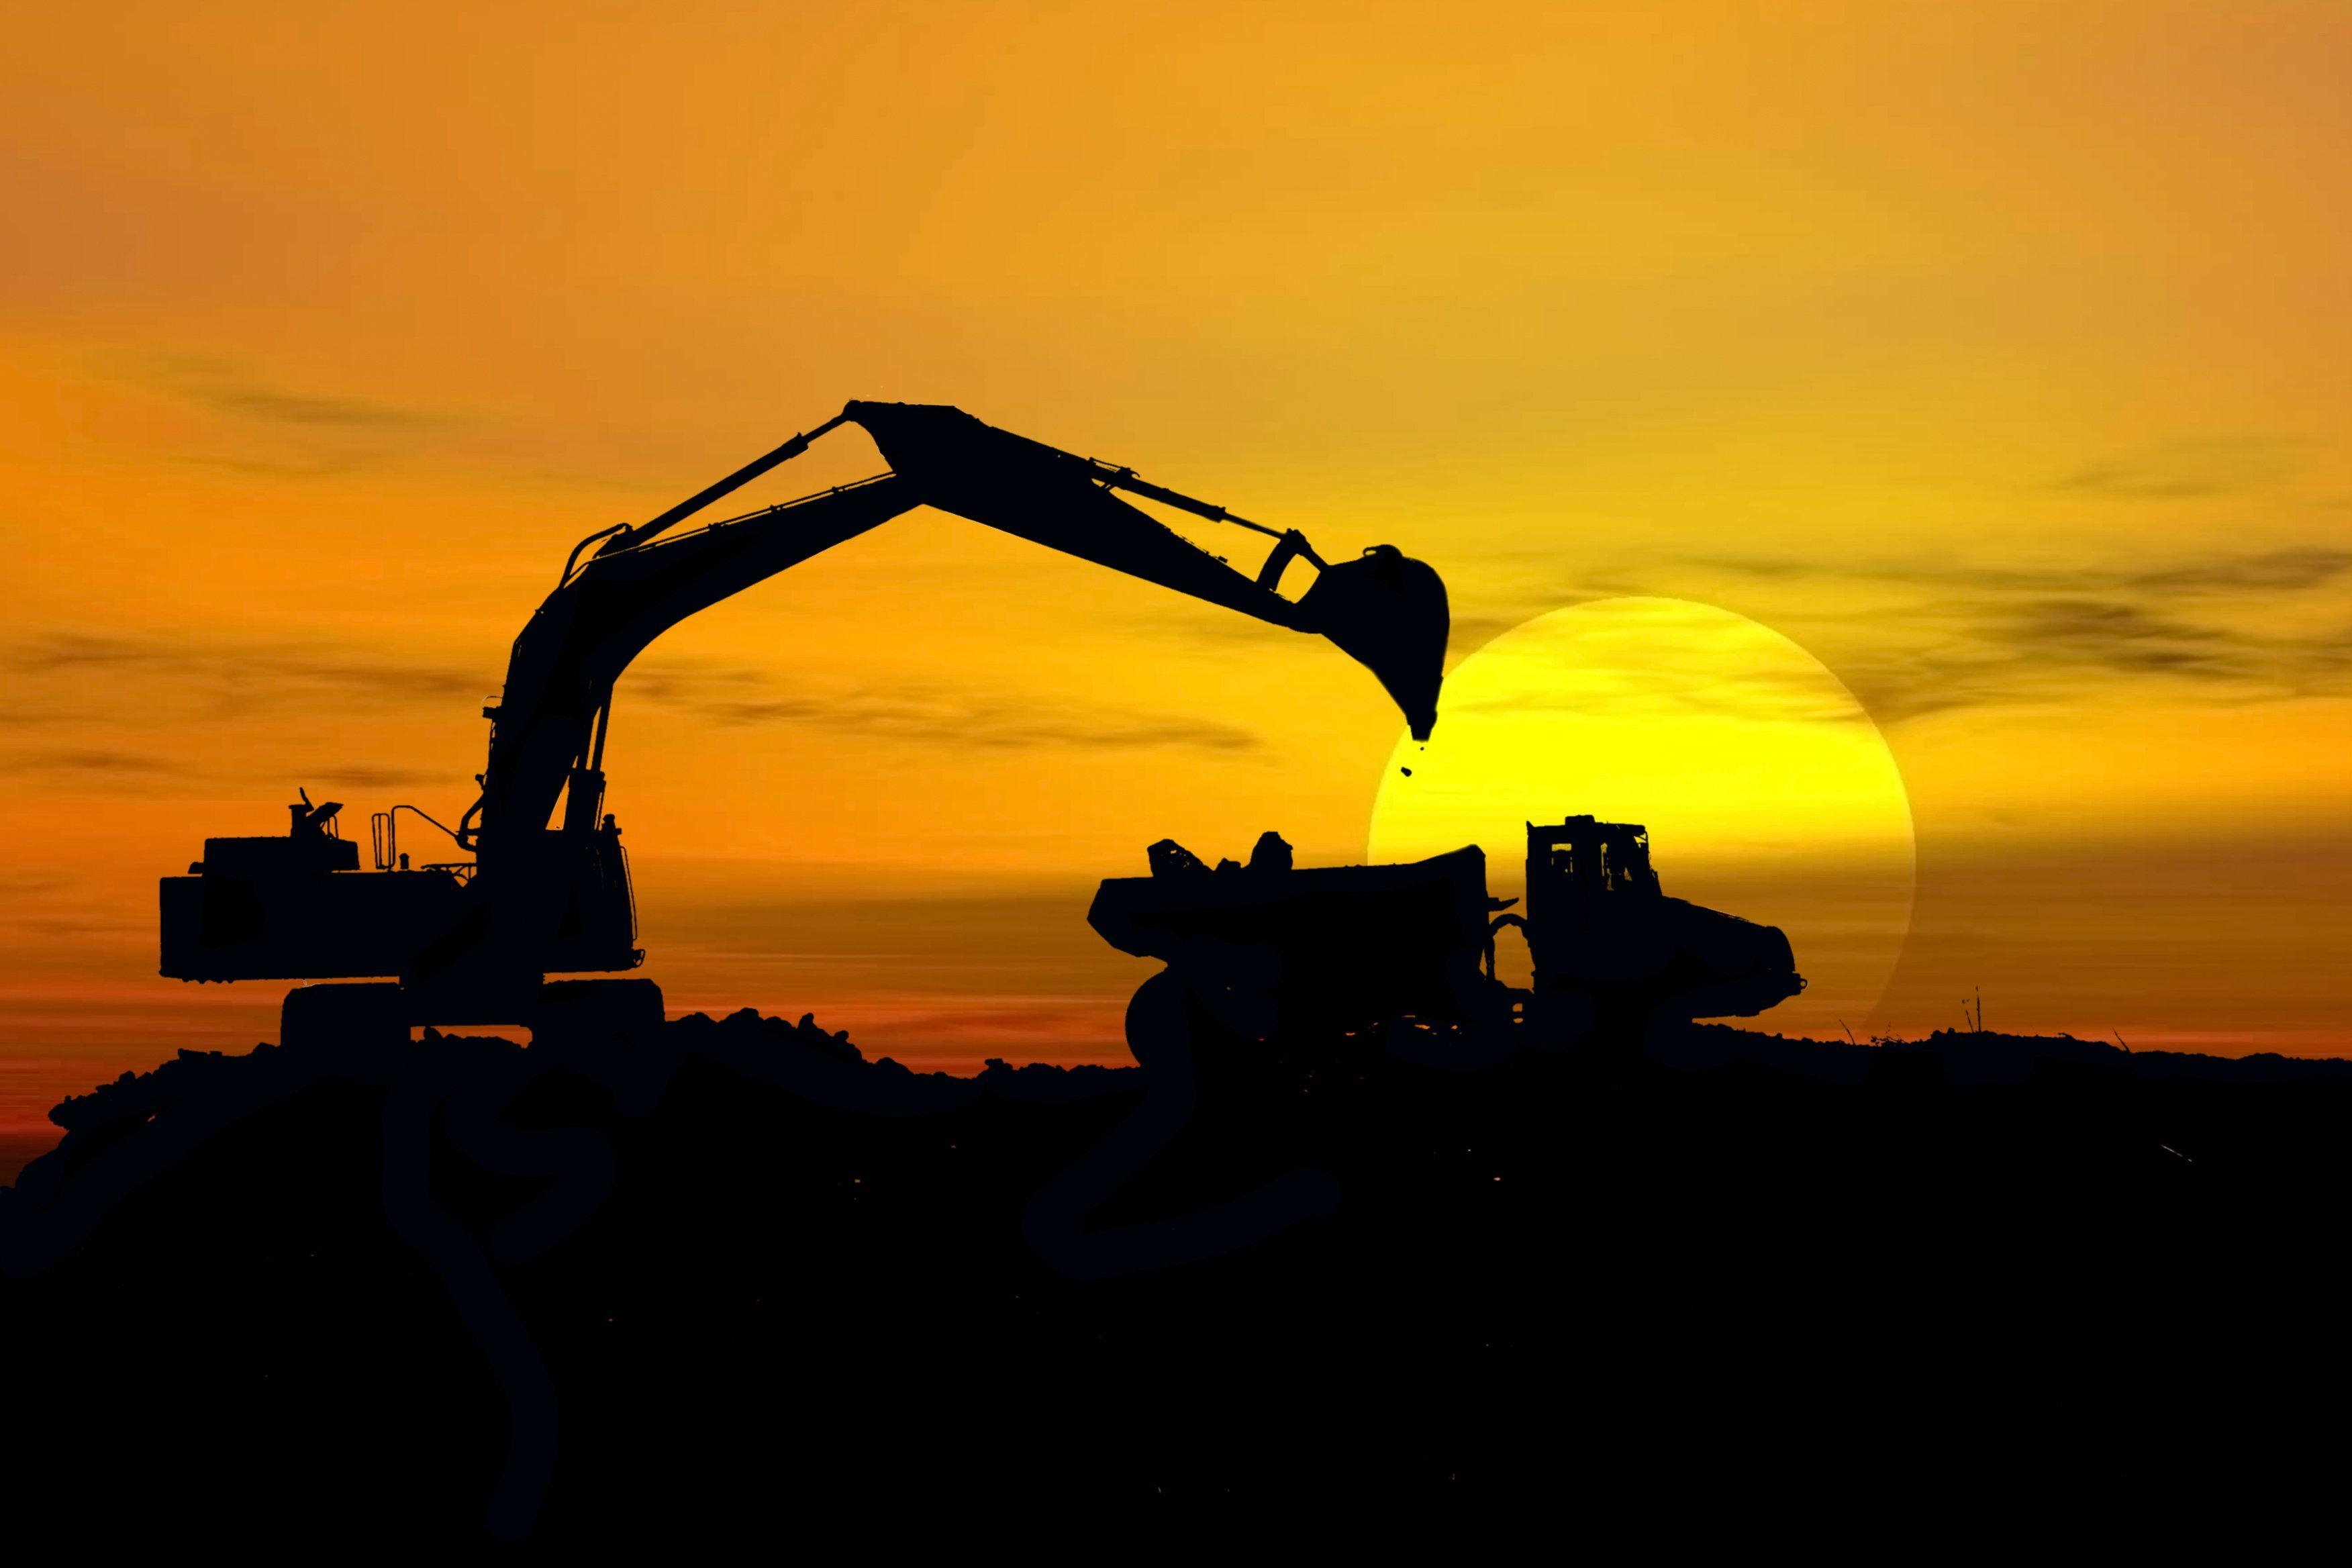 Heavy Equipment Wallpapers - Wallpaper Cave